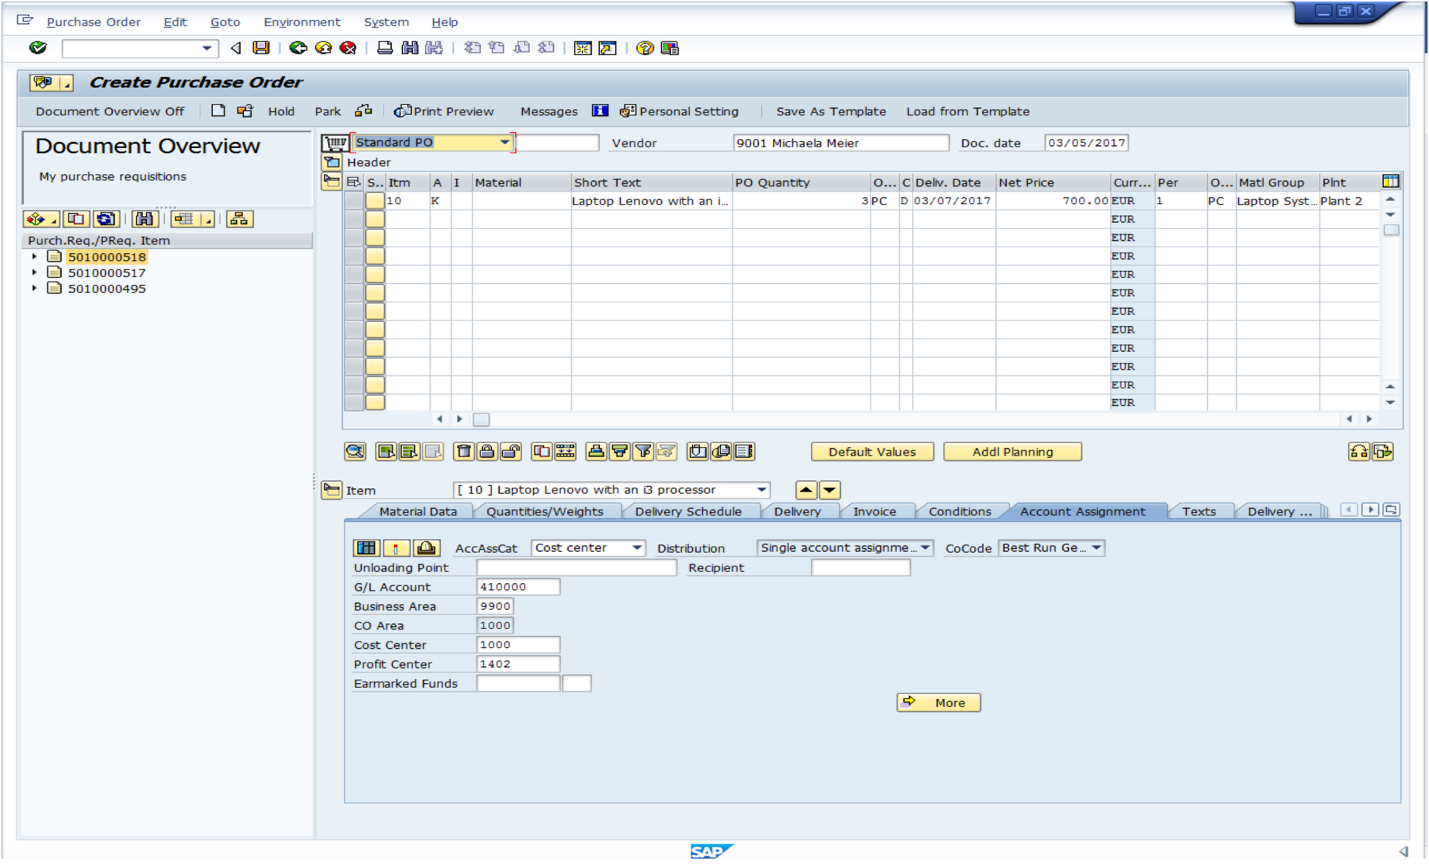 Account Assignment in SAP Purchase Order